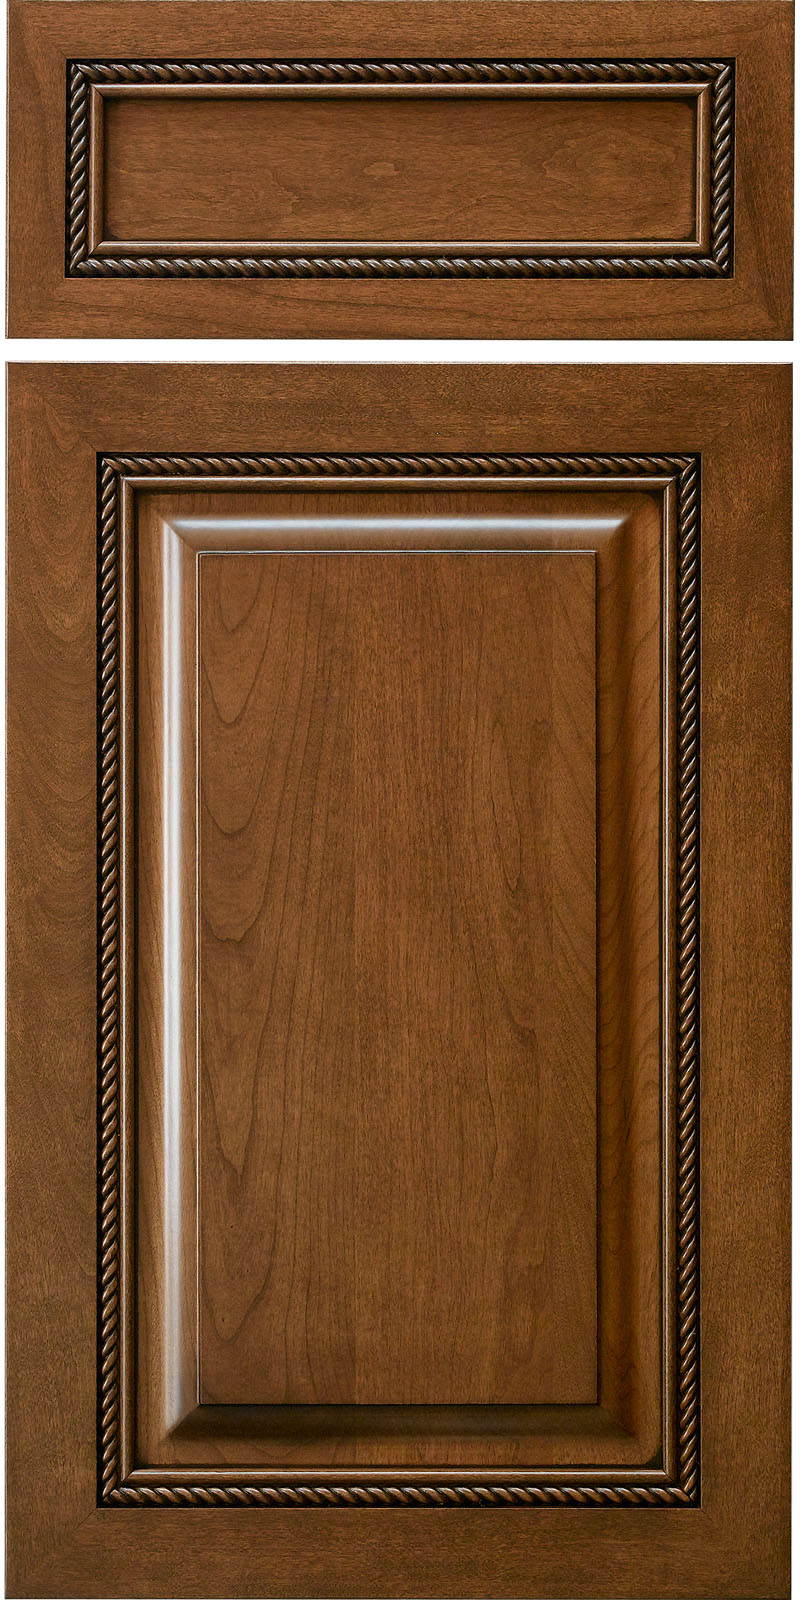 Saxony Applied Moulding Door